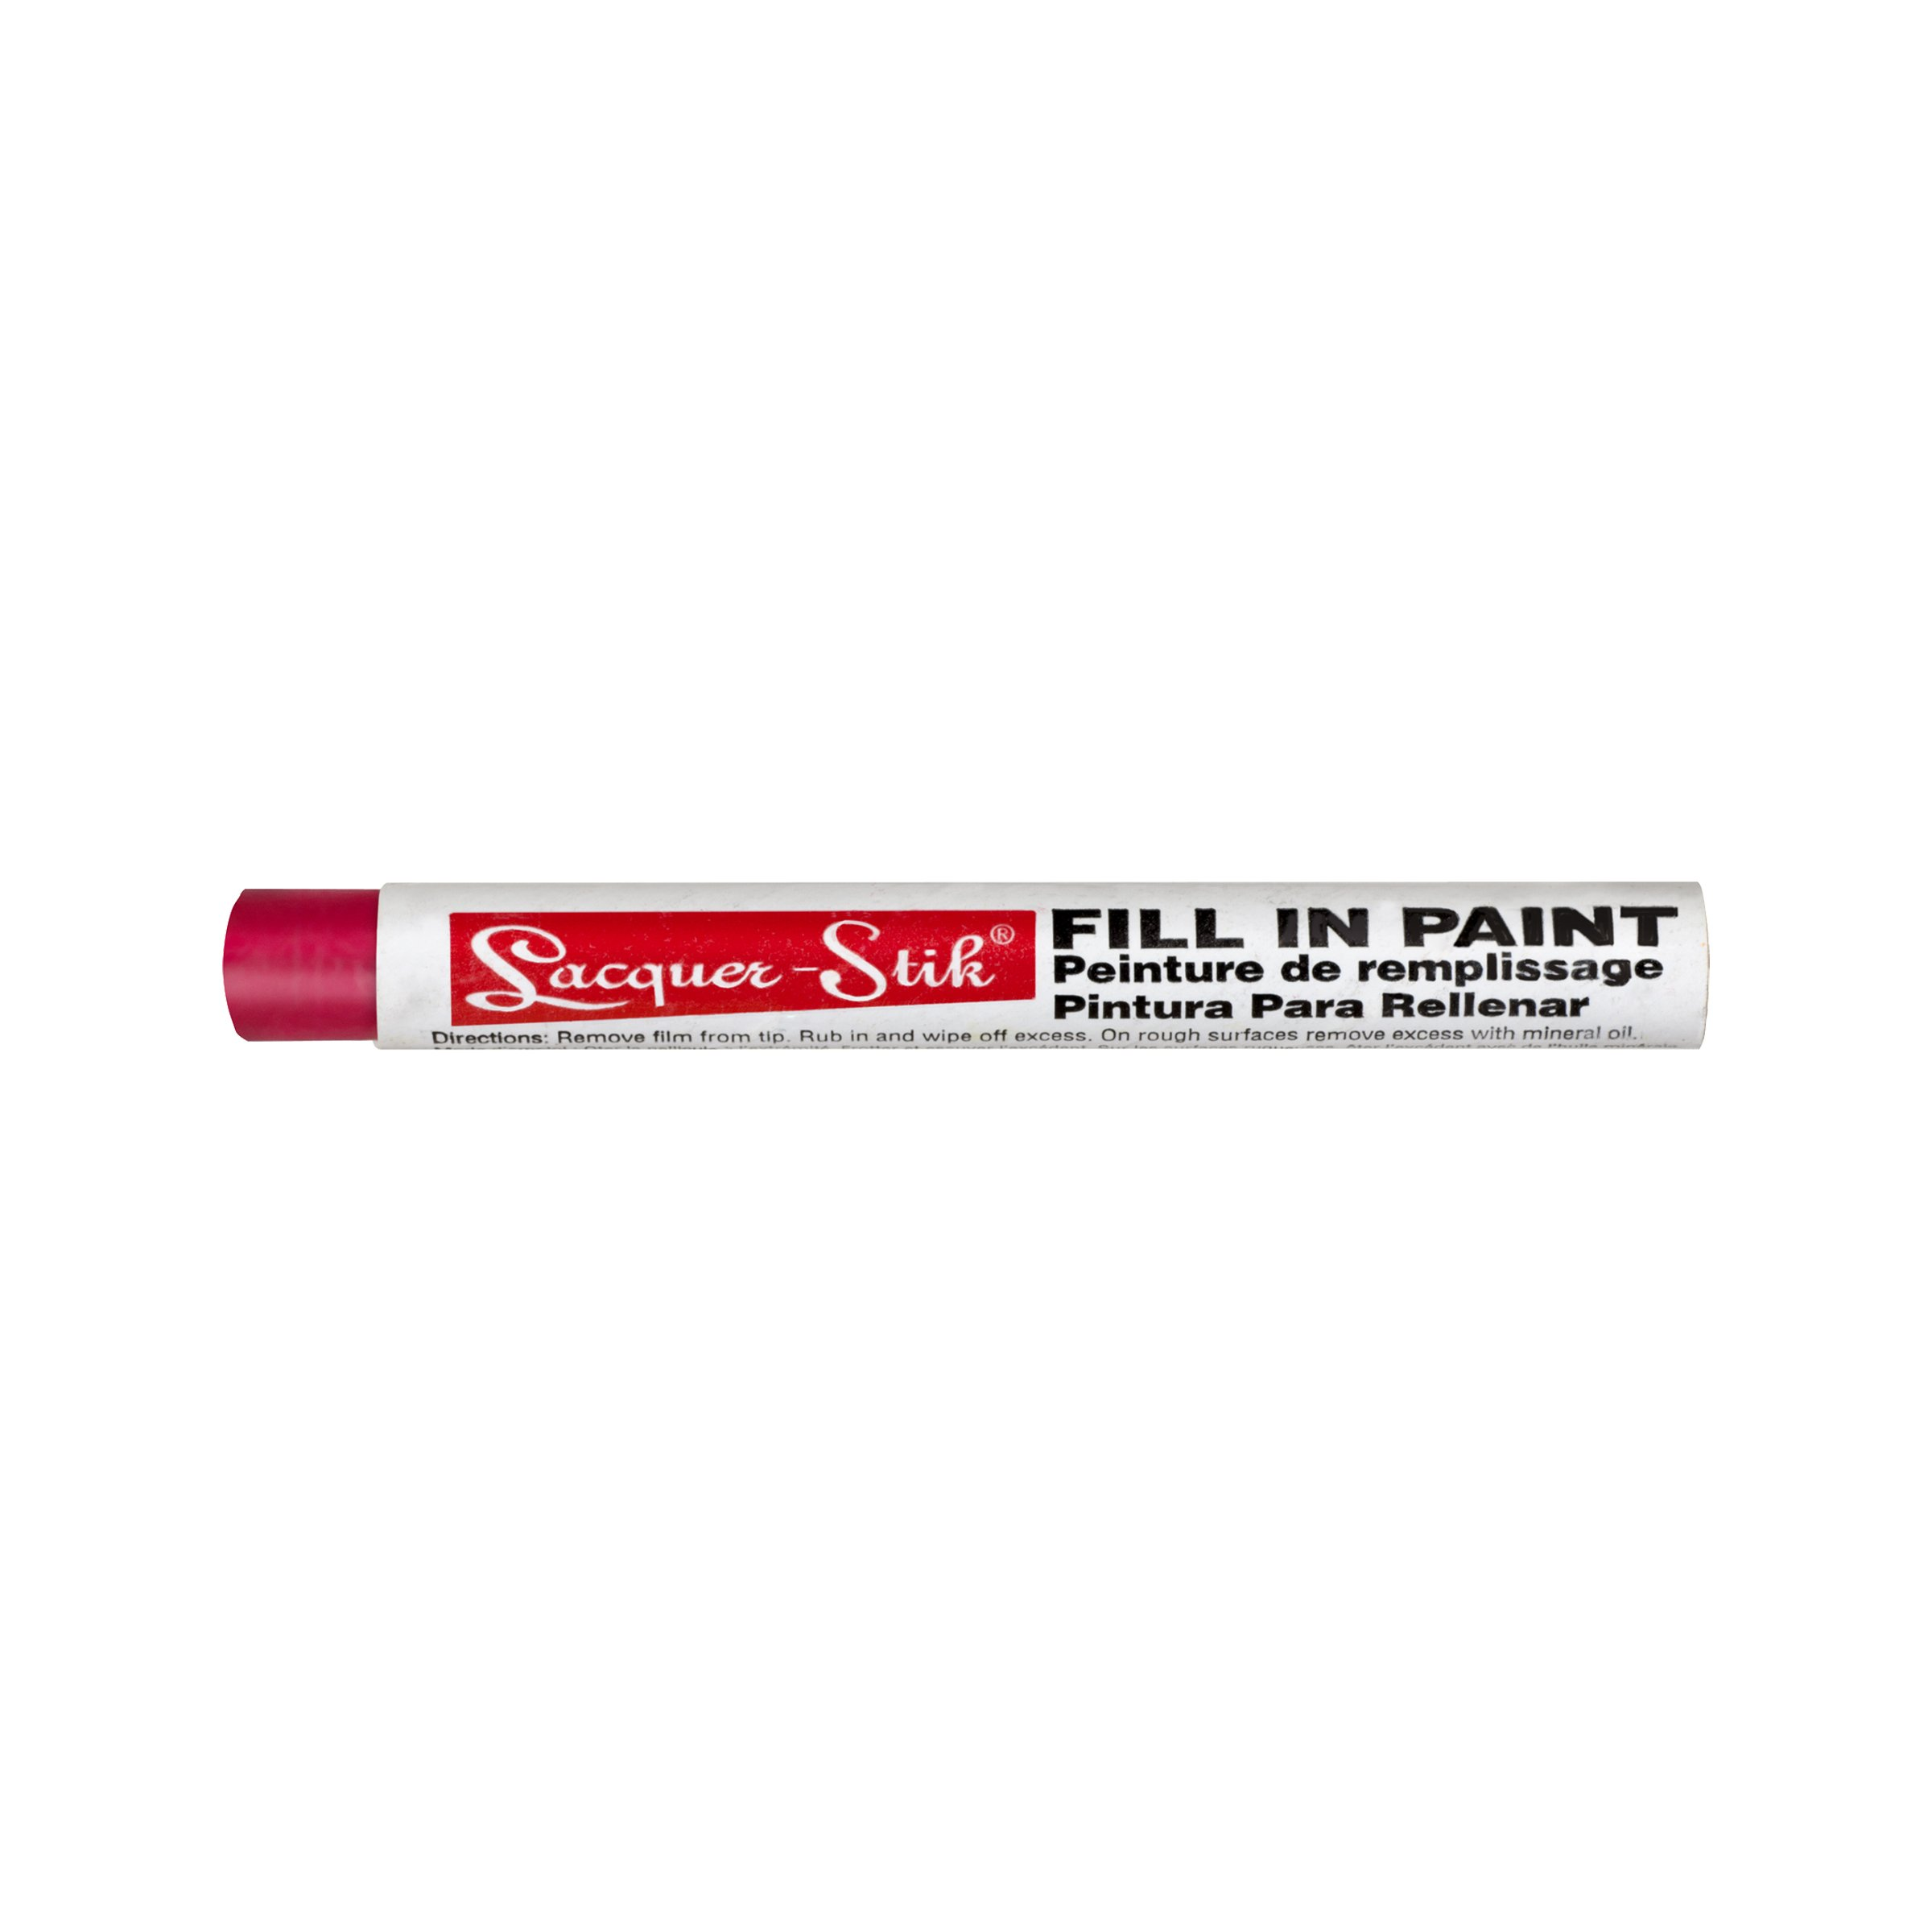 """Markal Lacquer-Stik Highlighter Fill-In Paint Crayon, 3/8"""" Diameter, 4-1/4"""" Length, Red (Pack of 12)"""